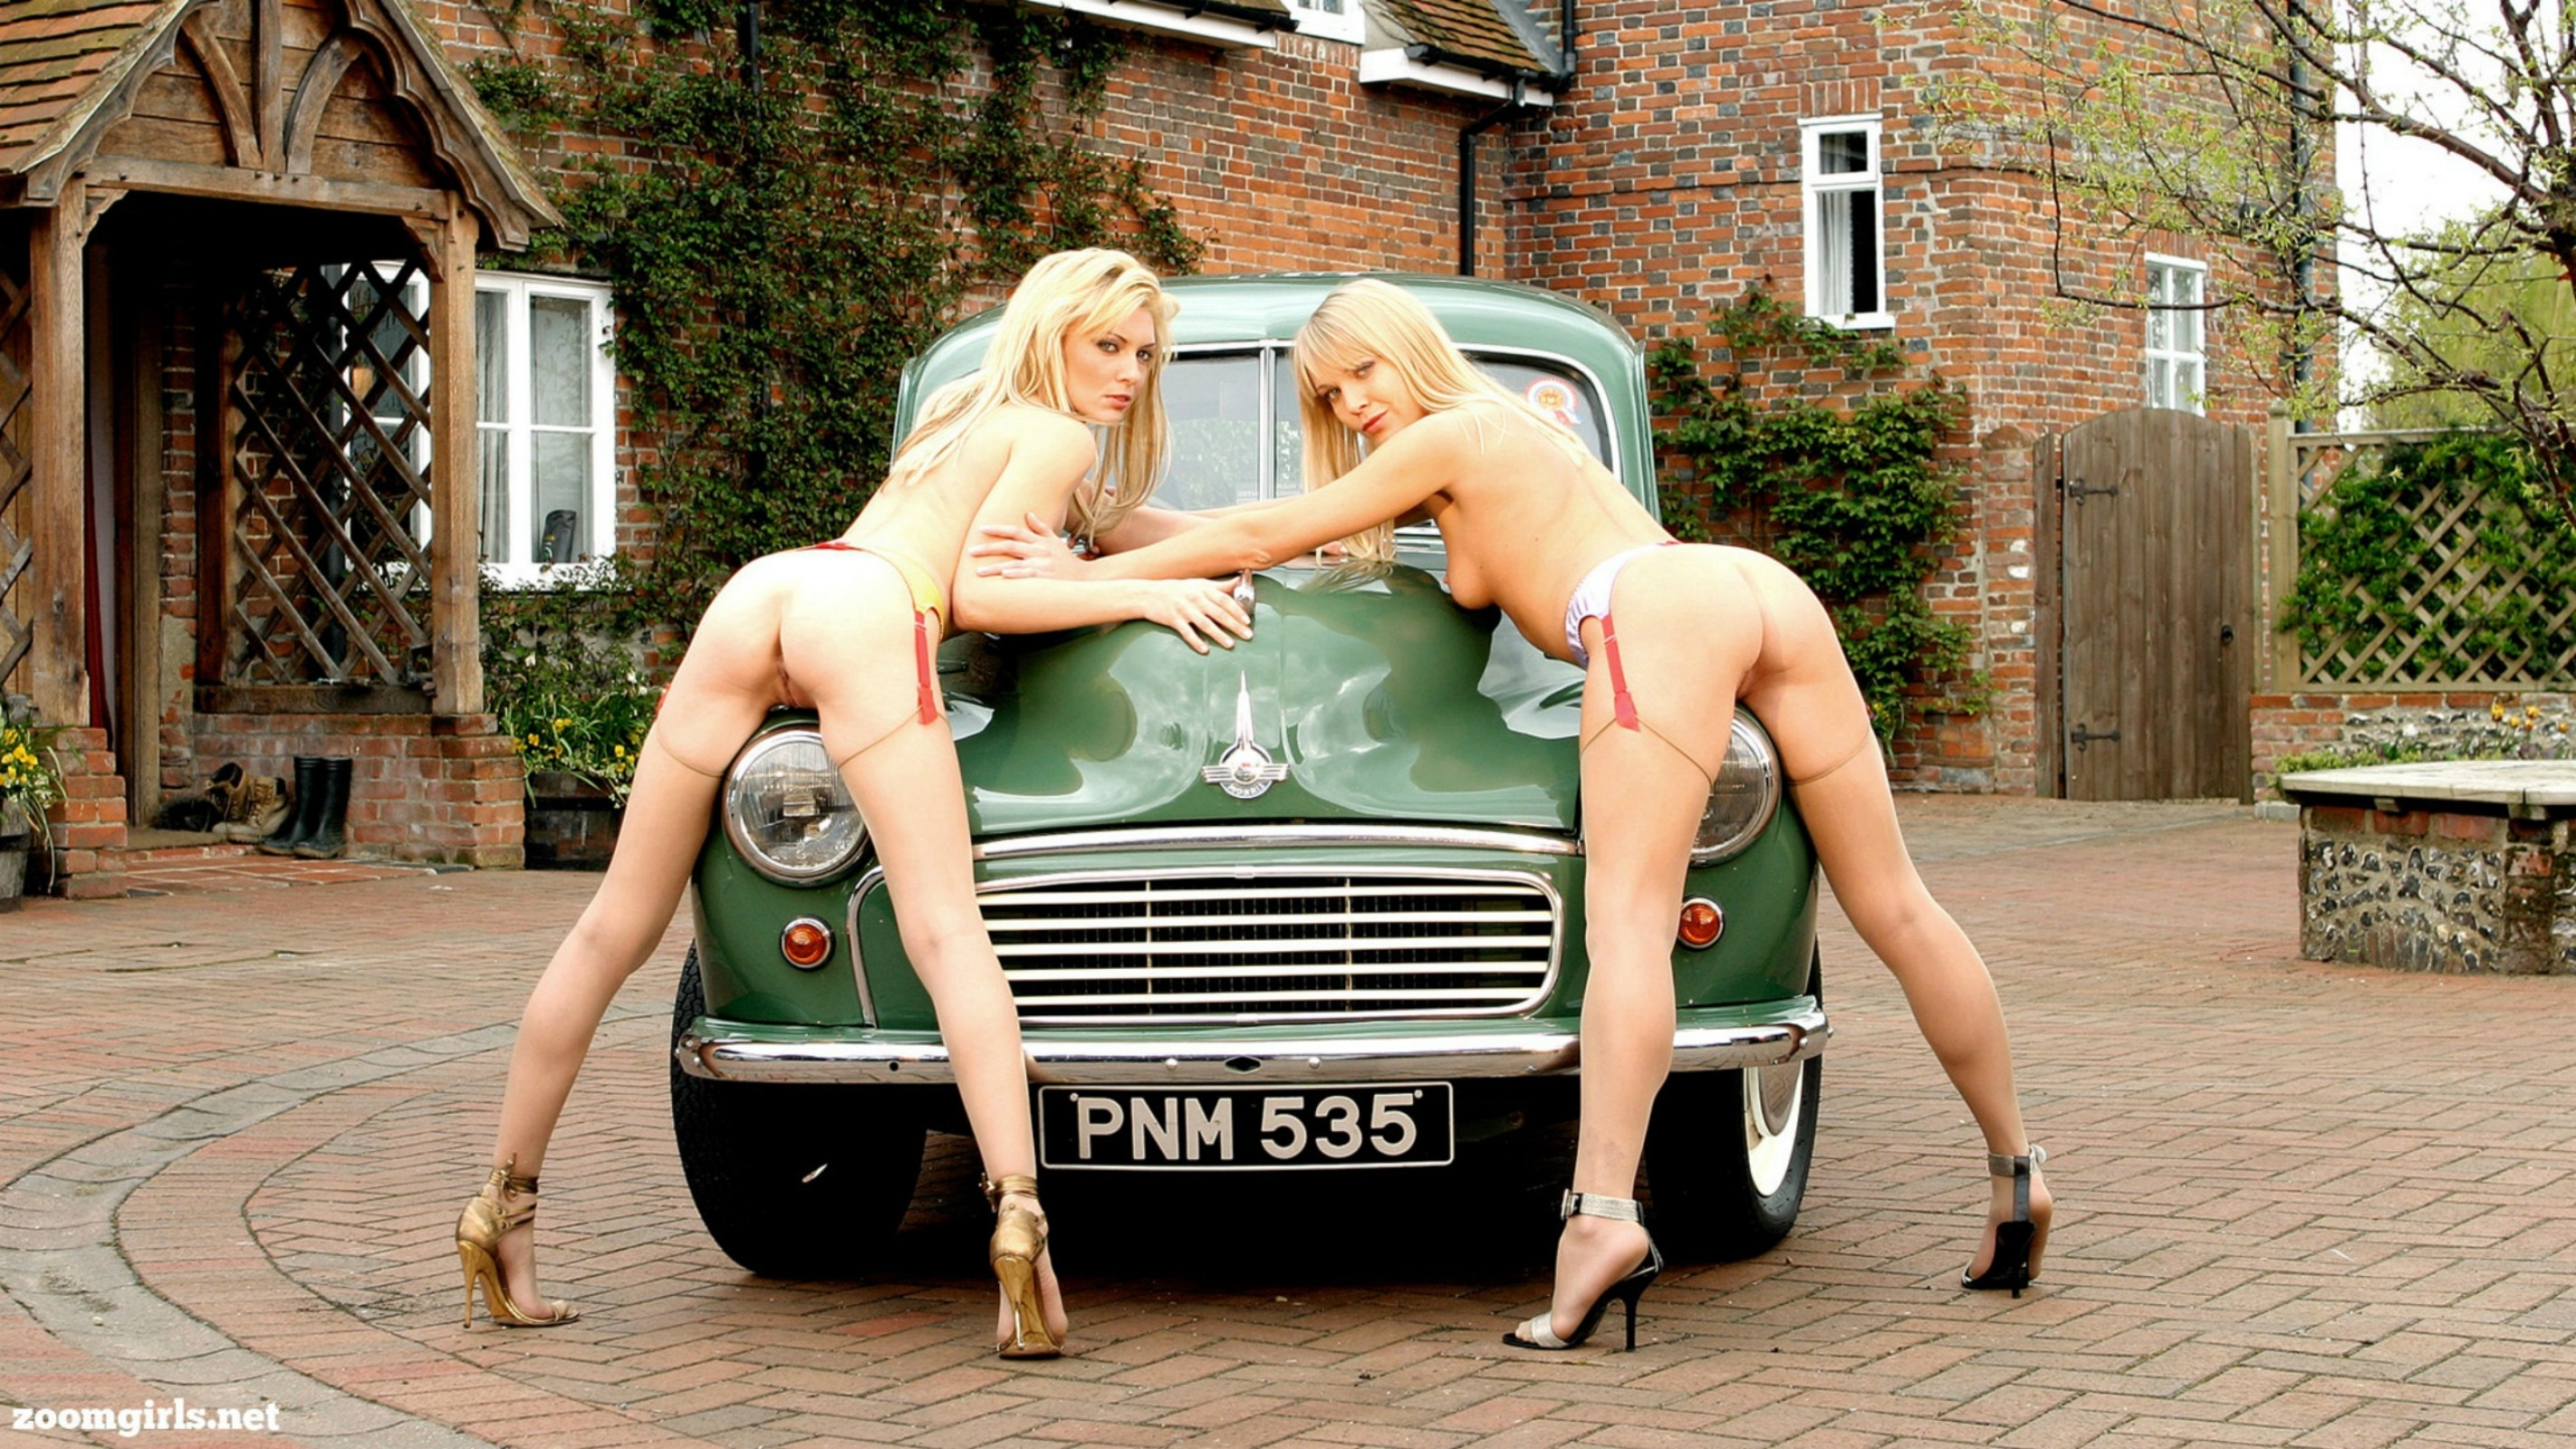 from Armani girls modeling naked with cars